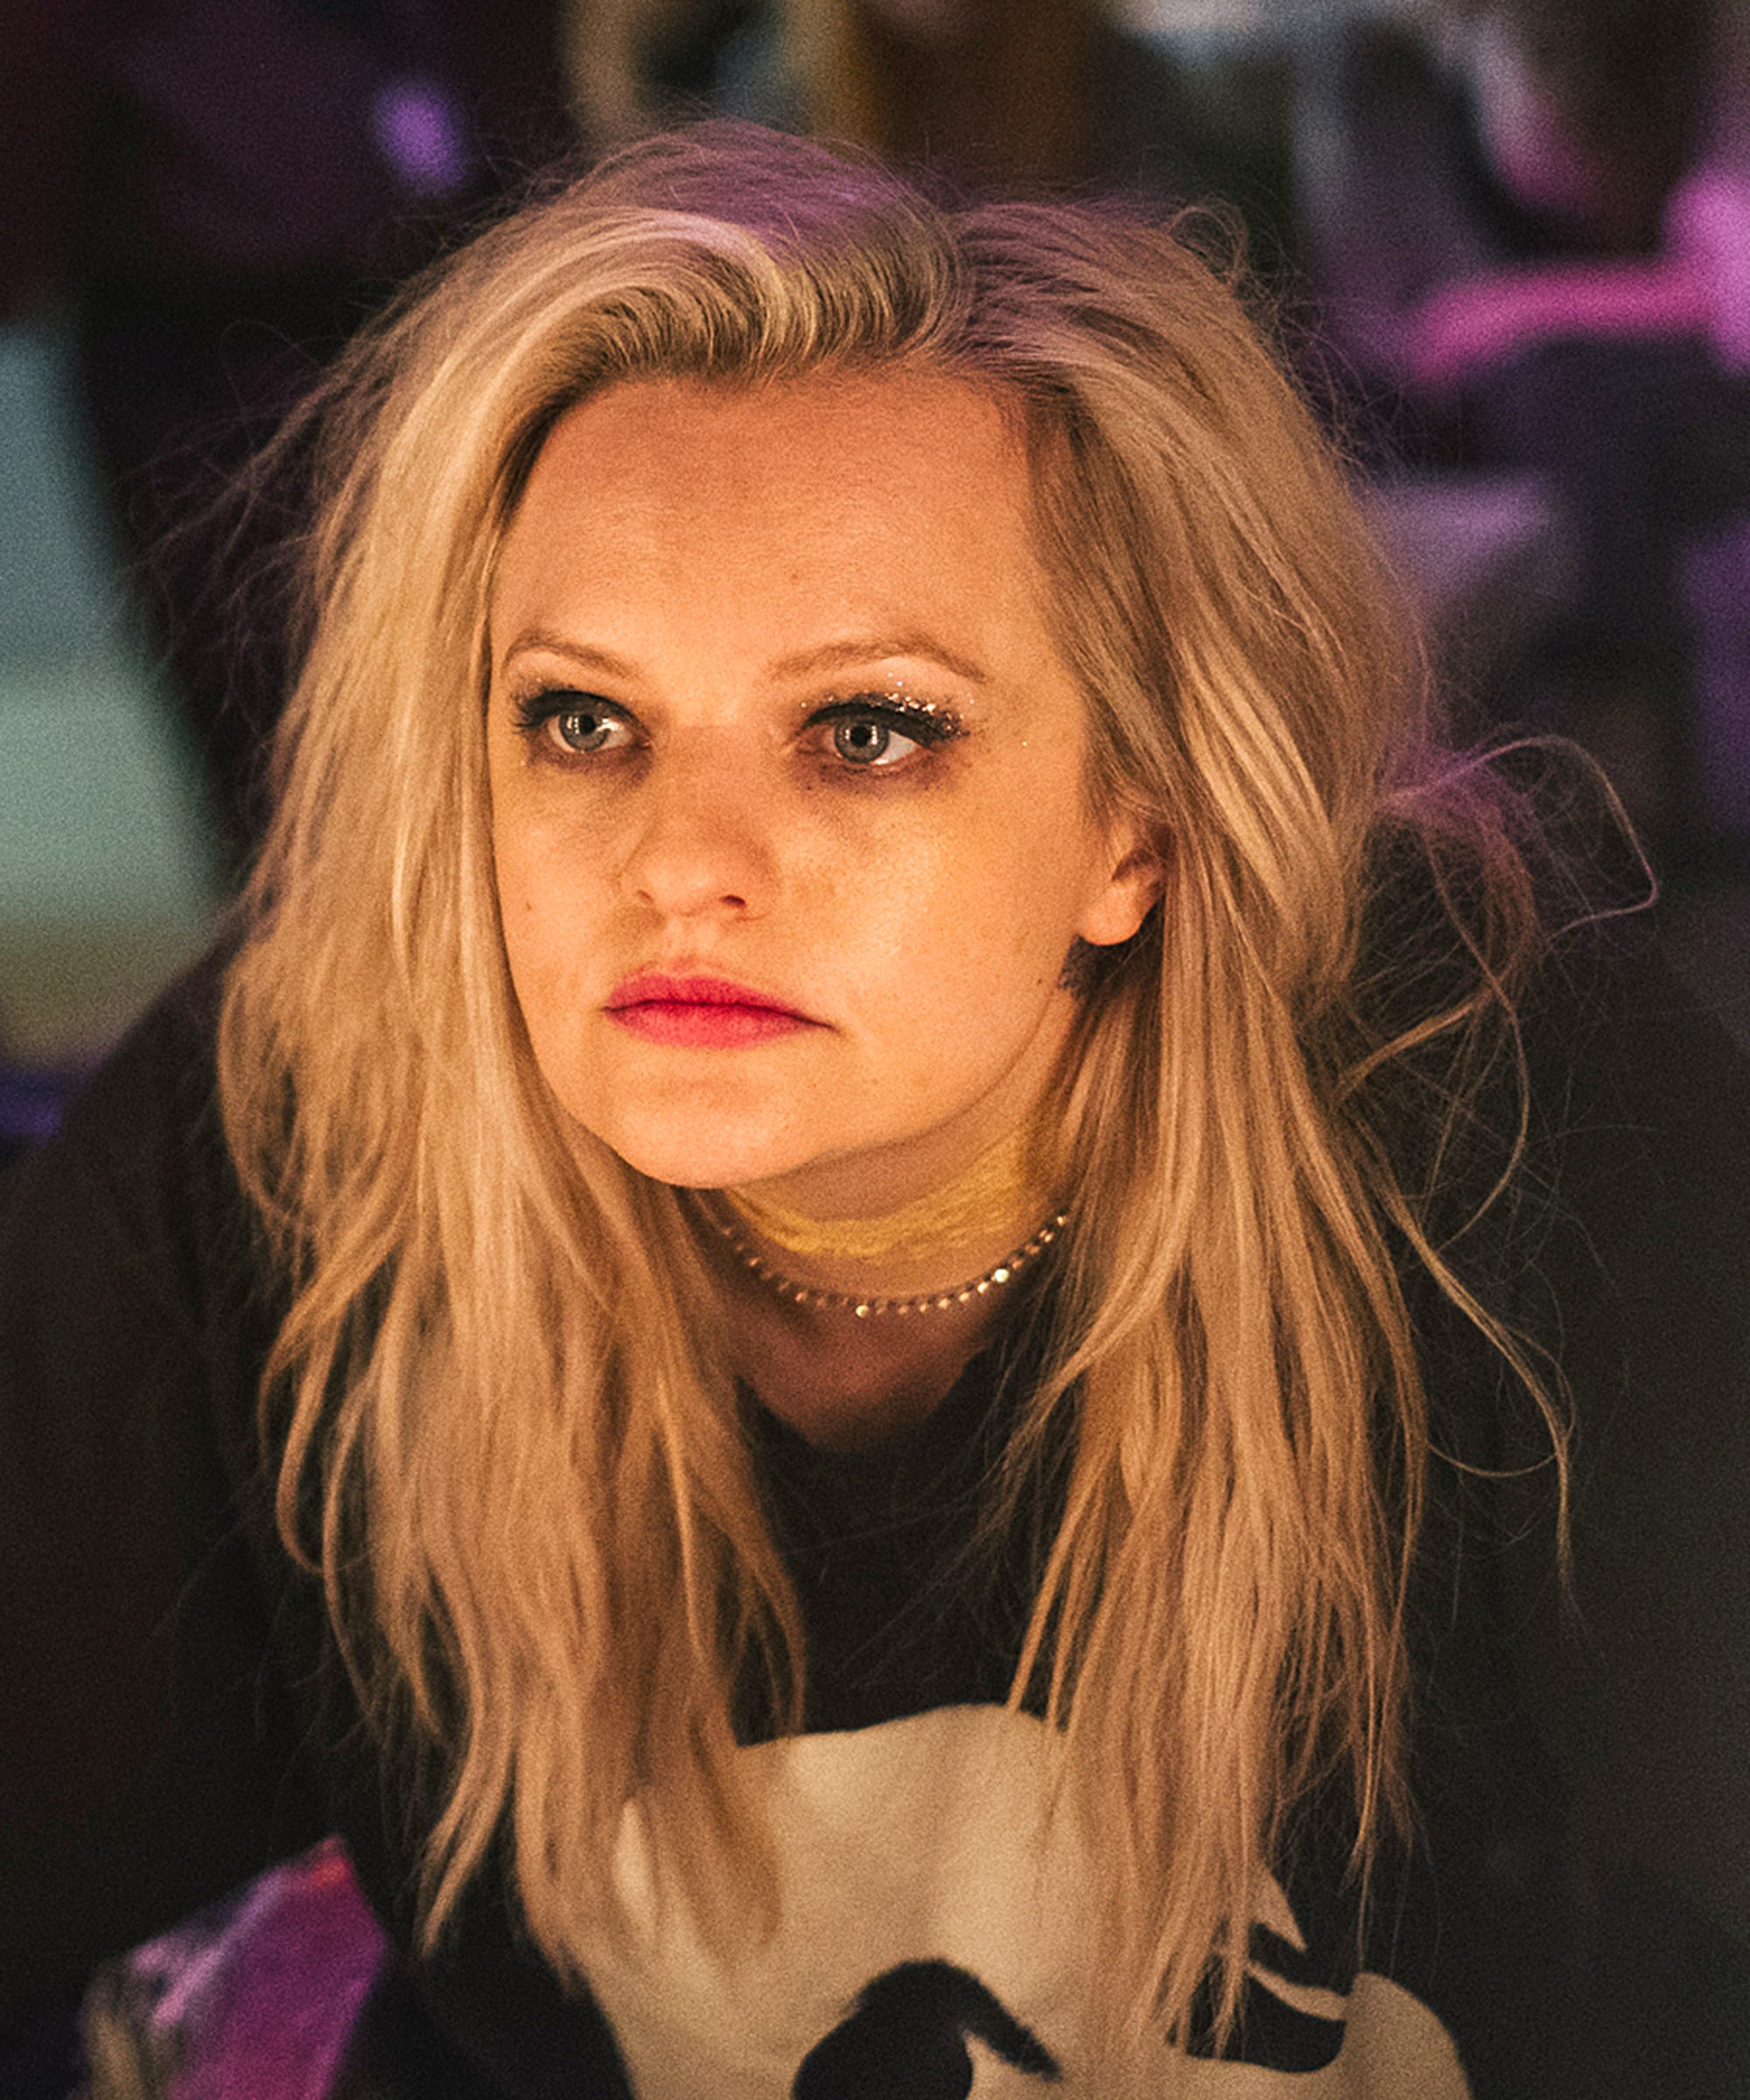 Elisabeth Moss' Grunge Makeup Tells A Cautionary Tale In Her Smell